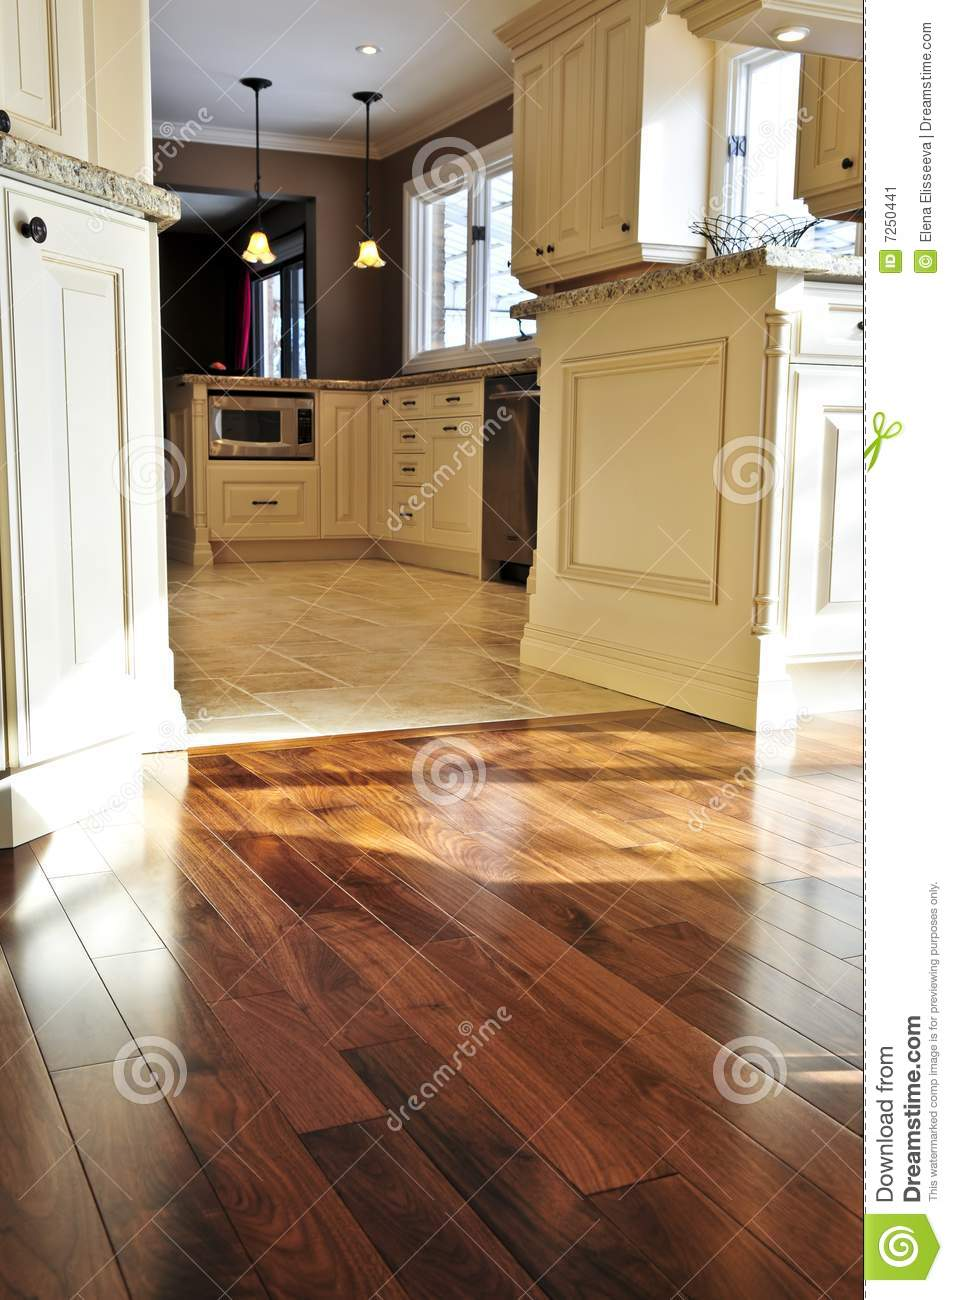 Hardwood And Tile Floor Stock Image Image 7250441